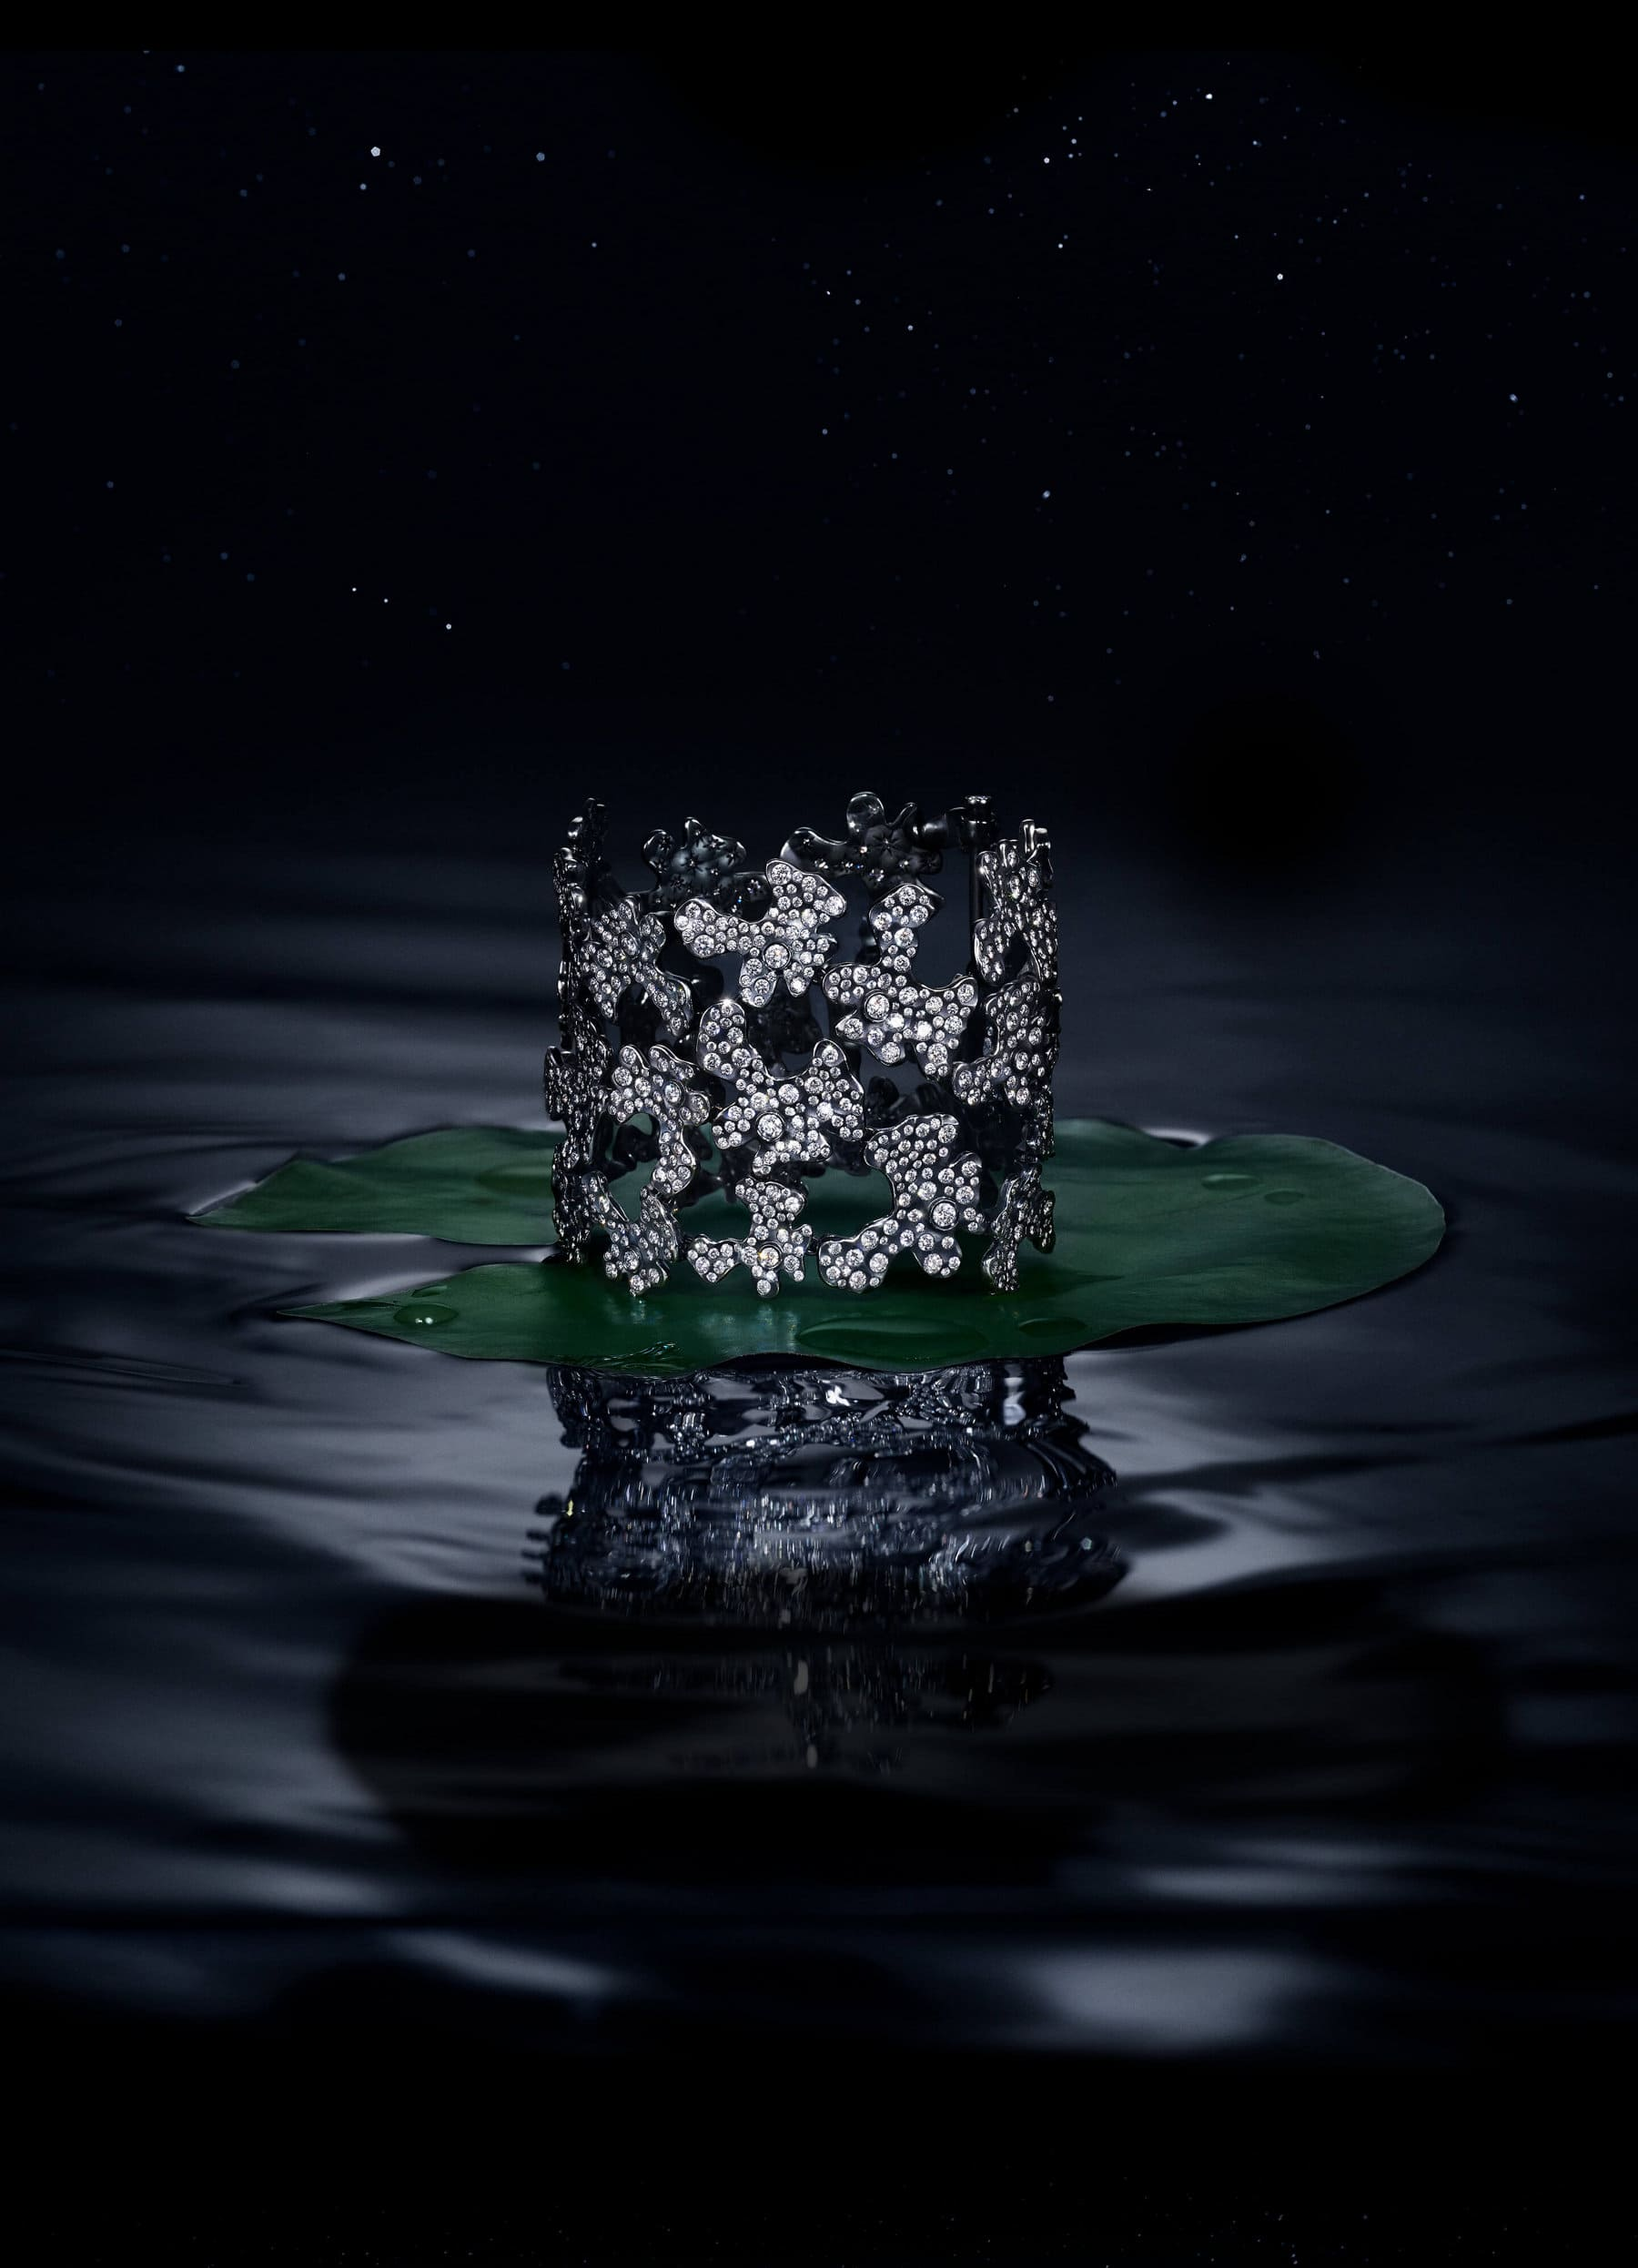 A color photo shows a David Yurman Night Petals cuff bracelet atop a green lily pad floating on a dark watery surface. The bracelet is crafted from lily-pad-shaped sections of rhodium-plated 18K white gold with brilliant- and rose-cut white diamonds.